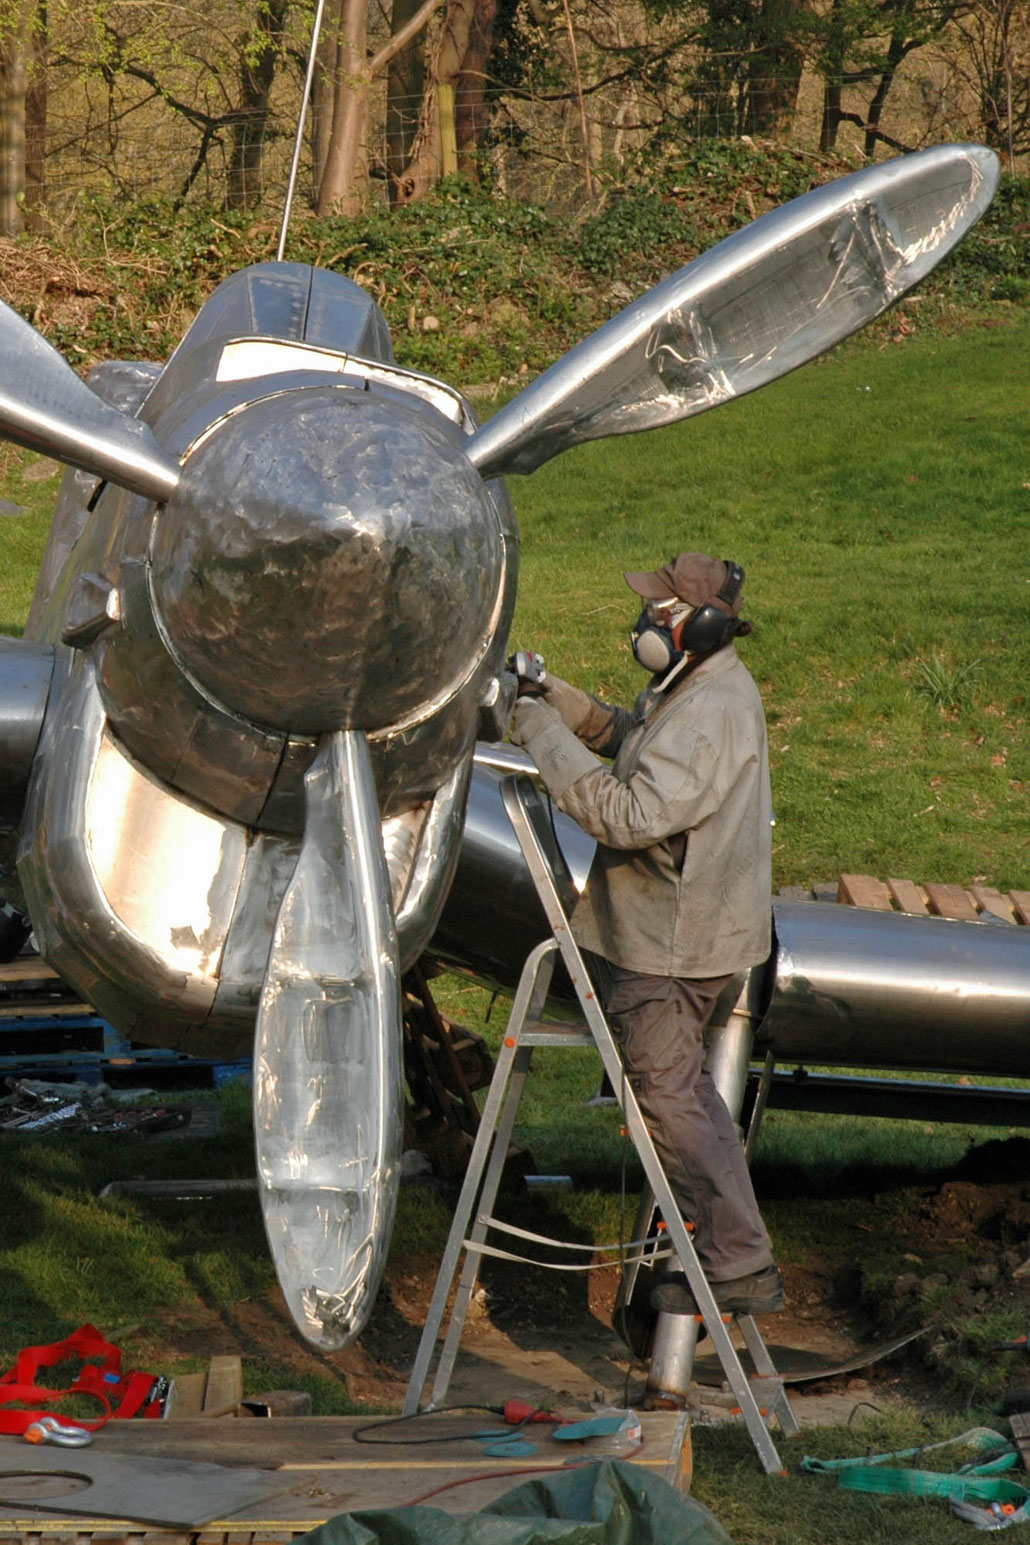 Sculptor HEX working at his STUKA sculpture at Burghley House Sculpture Park. This work is a memorial for the Battle of Britain. HEX is a Fellow of the Royal British Society of Sculptors.